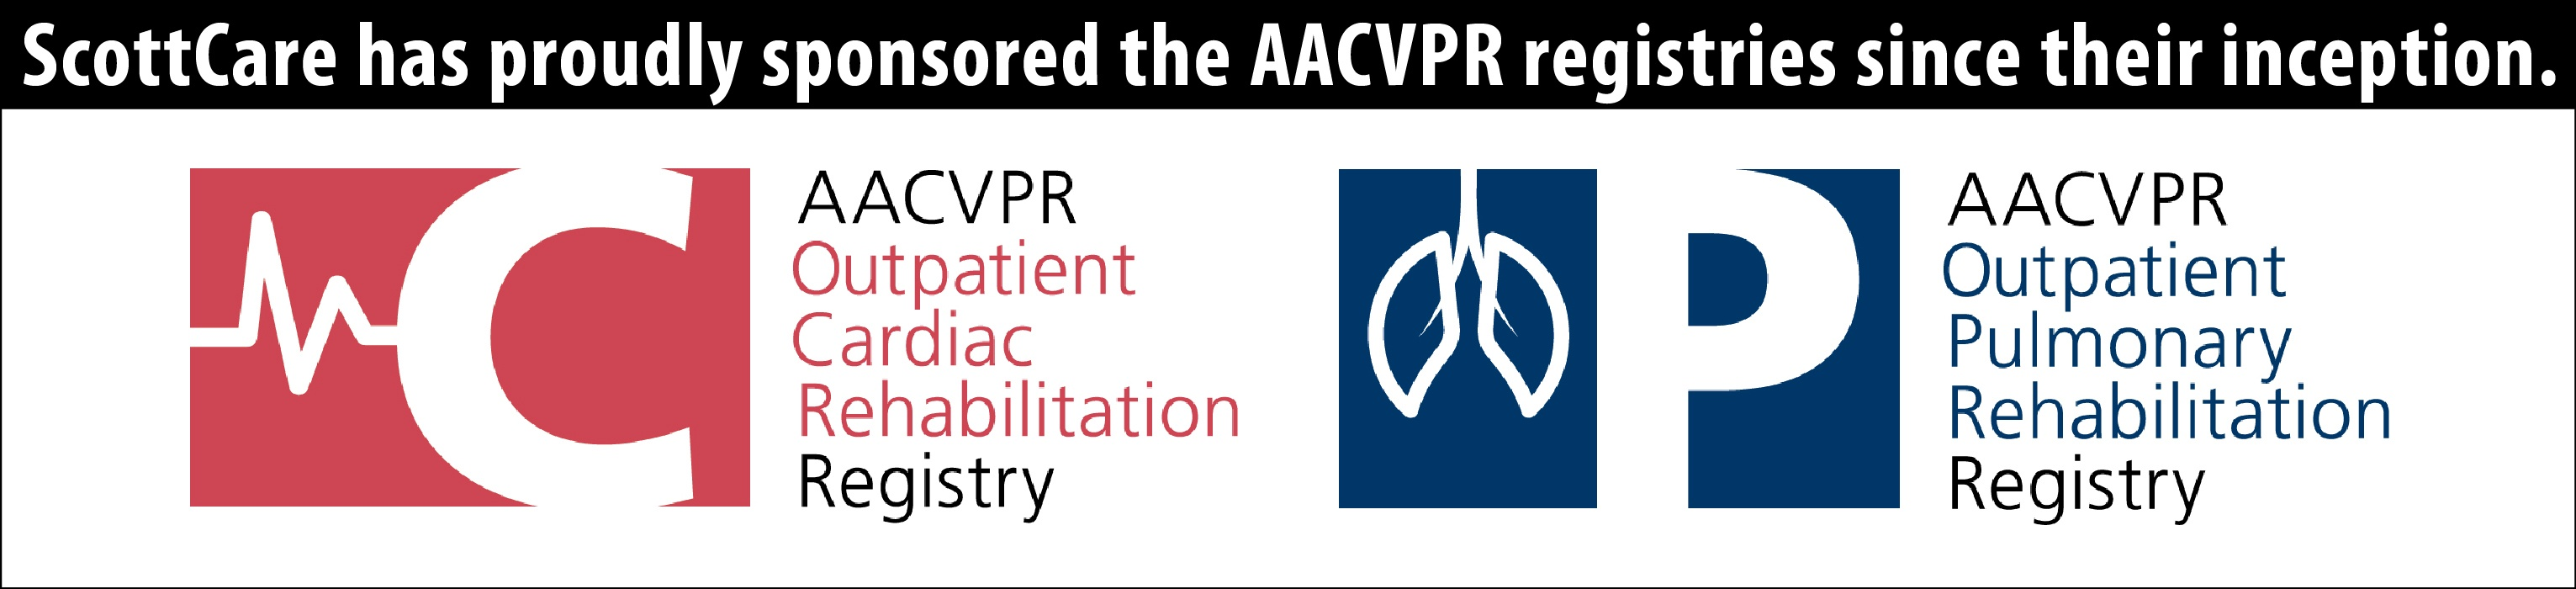 ScottCare is a proud to be one of the first sponsors of the AACVPR registries.